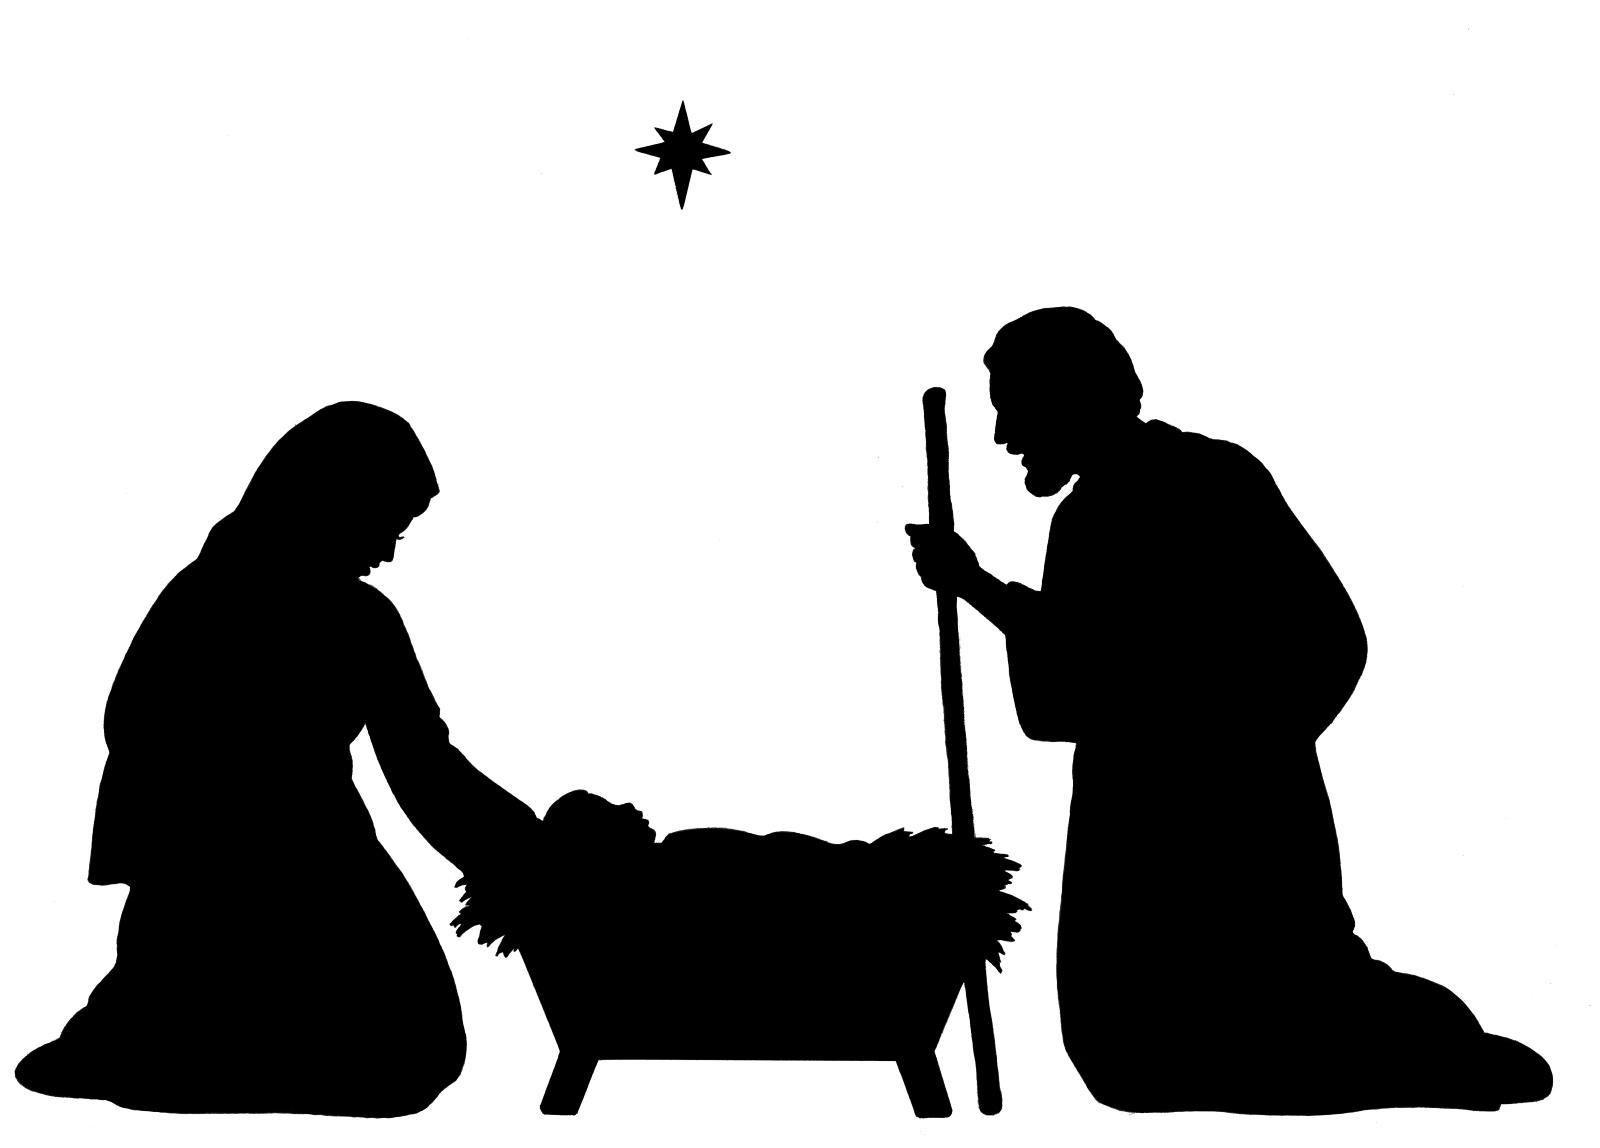 Free Printable Nativity Silhouette Pattern - Free Printable Nativity Silhouette